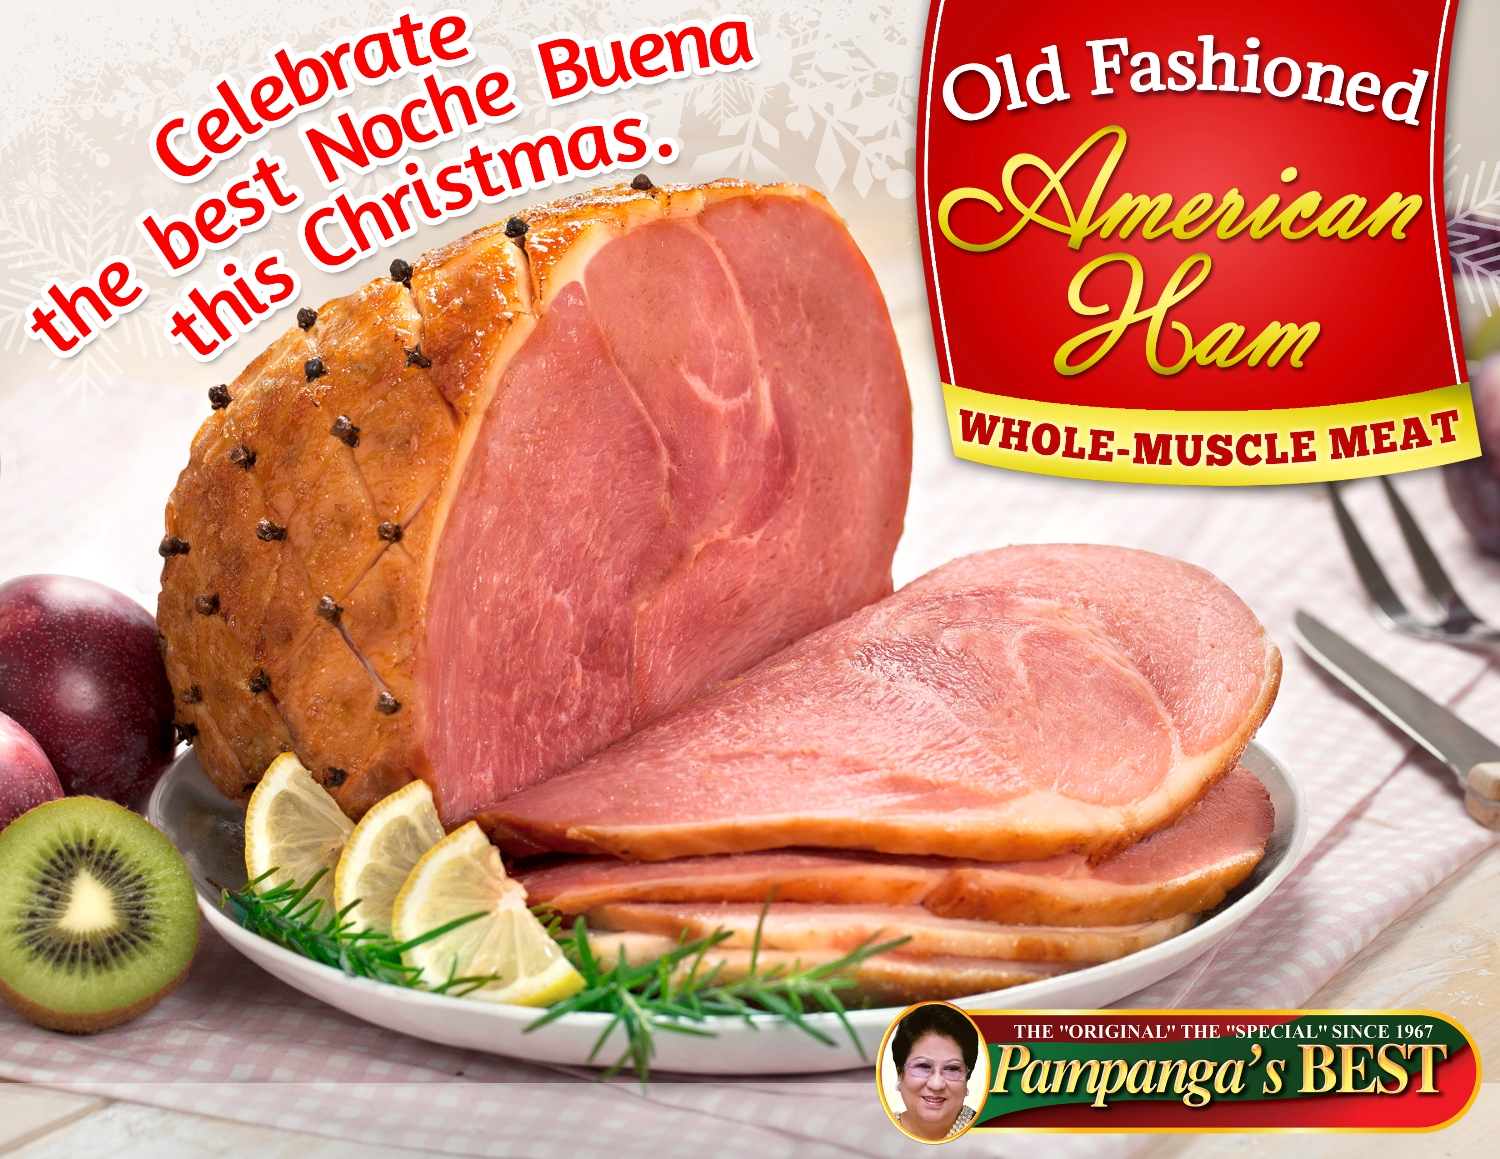 old fashioned american ham - Best Christmas Ham